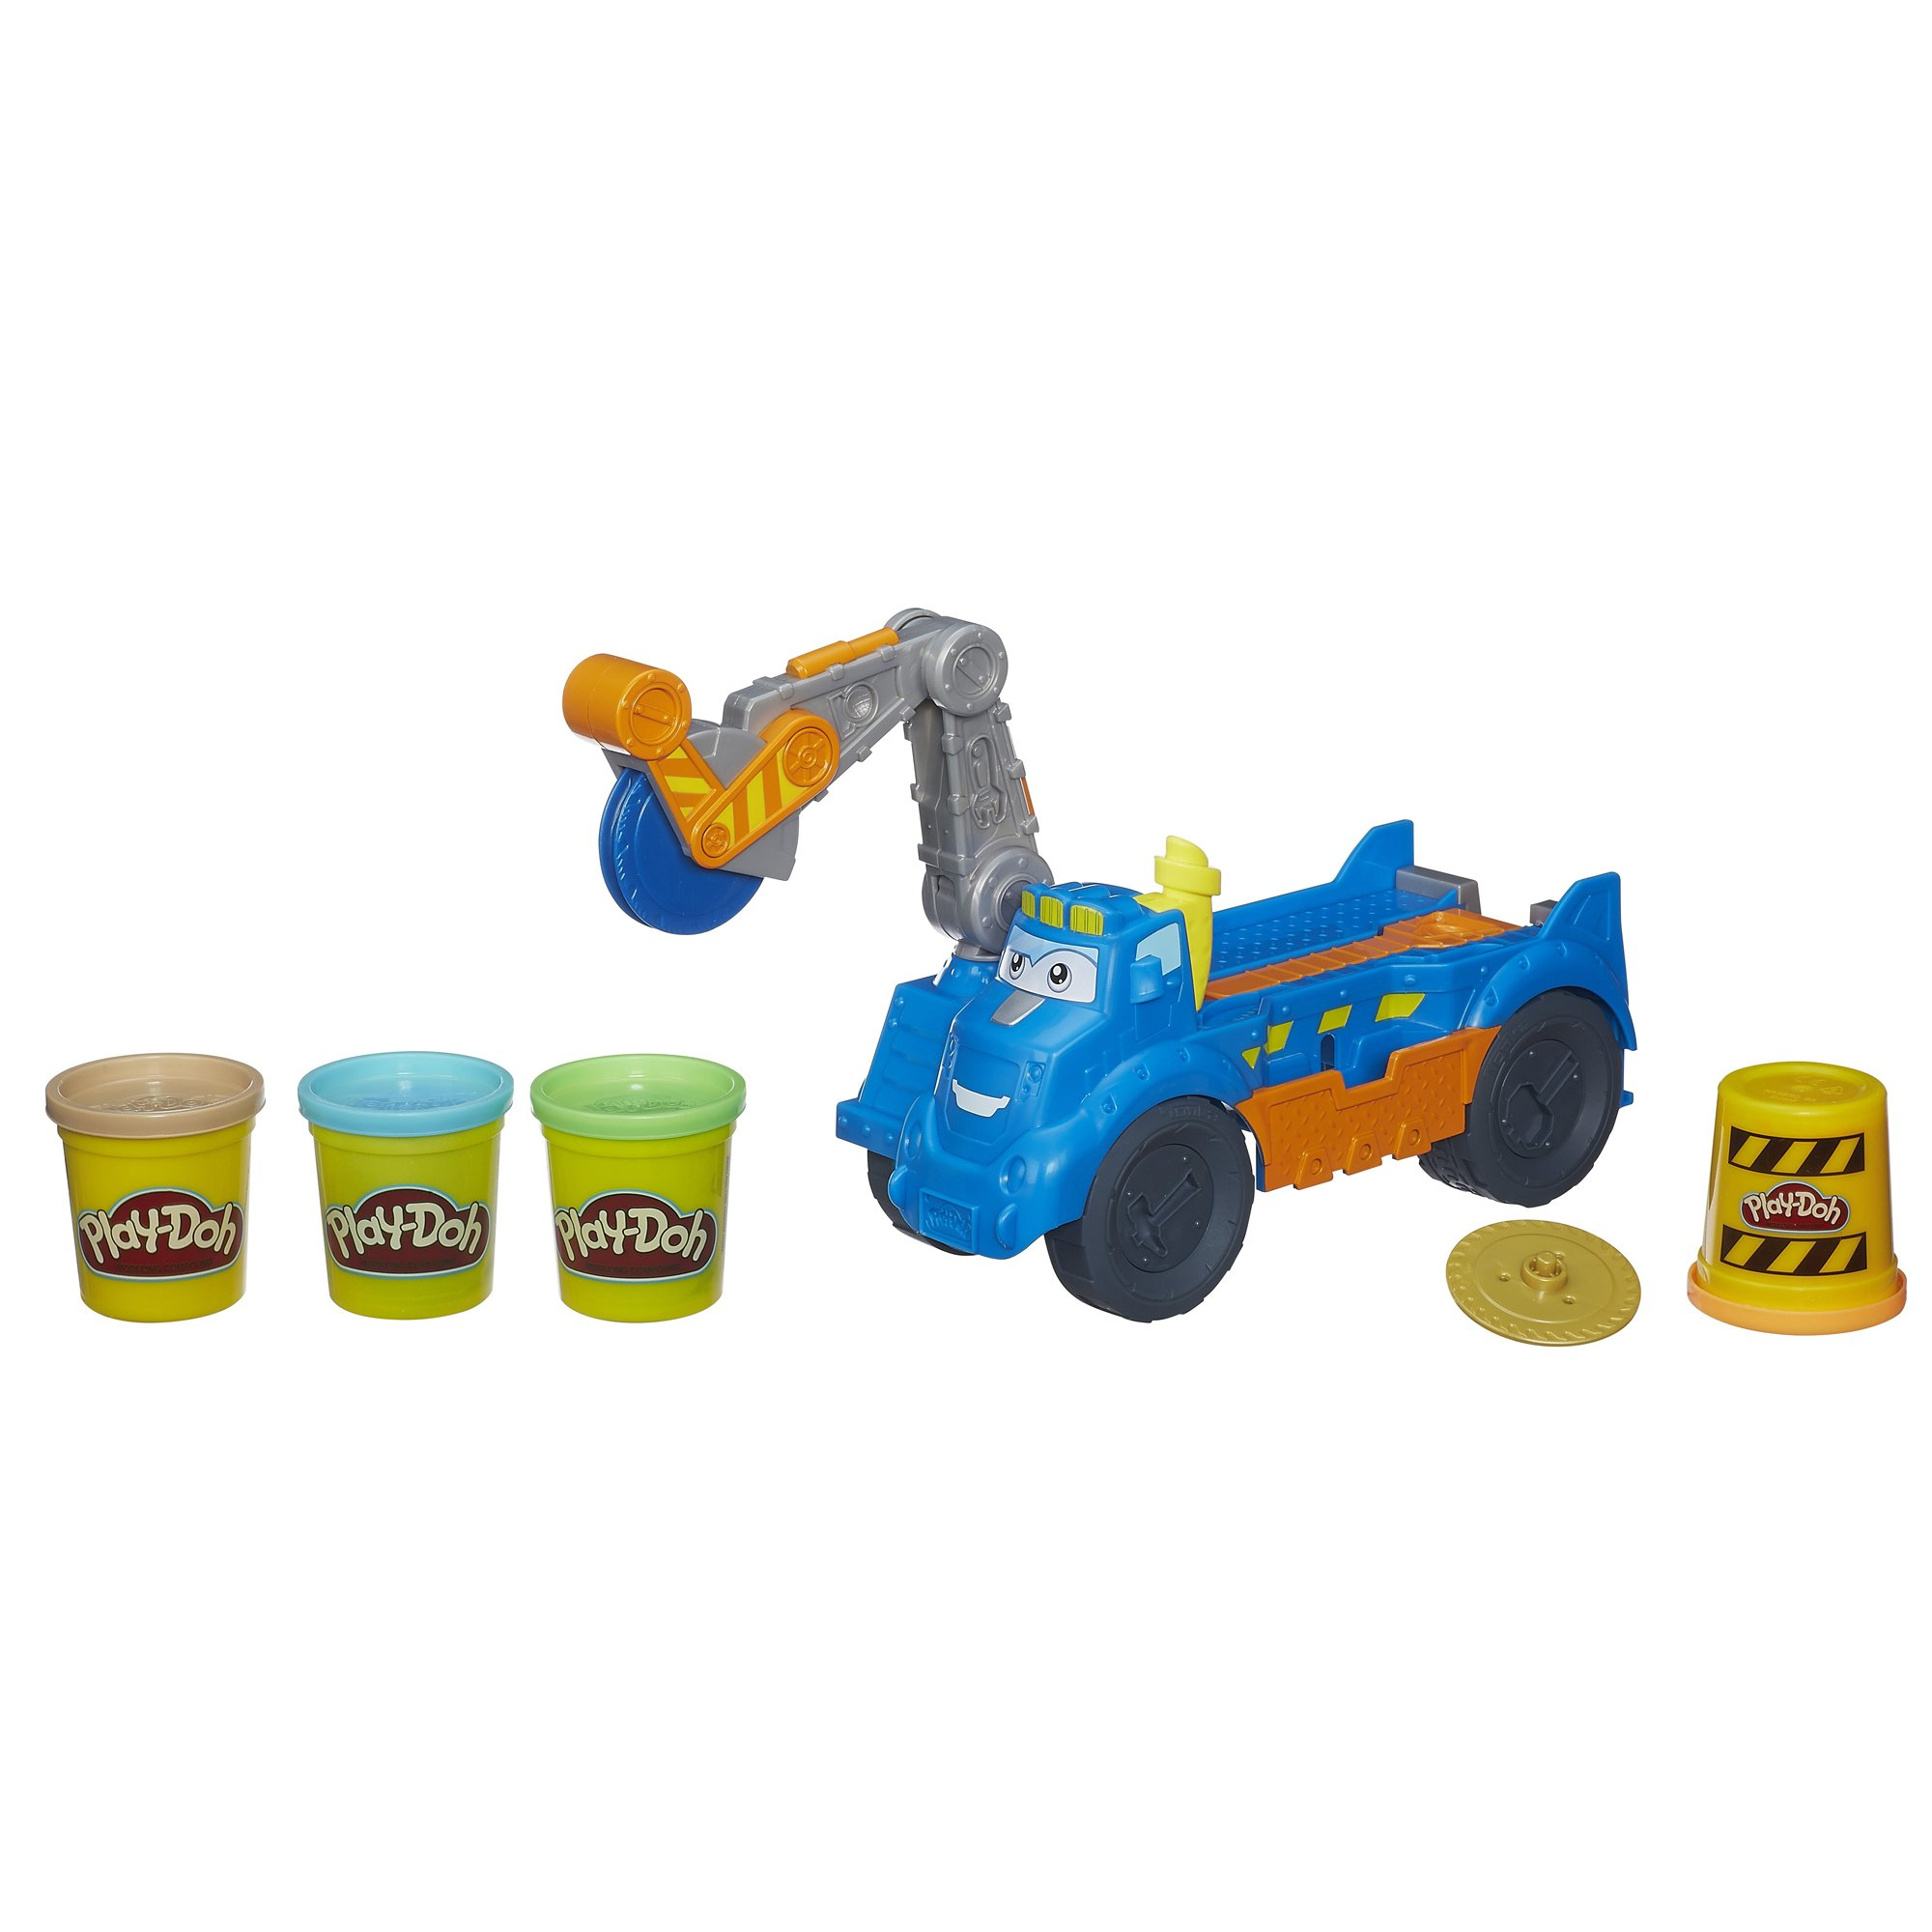 Play-Doh Diggin' Rigs Buzzsaw Playset, Construction Toy for Boys and Girls, Ages 3 and up (Amazon Exclusive)